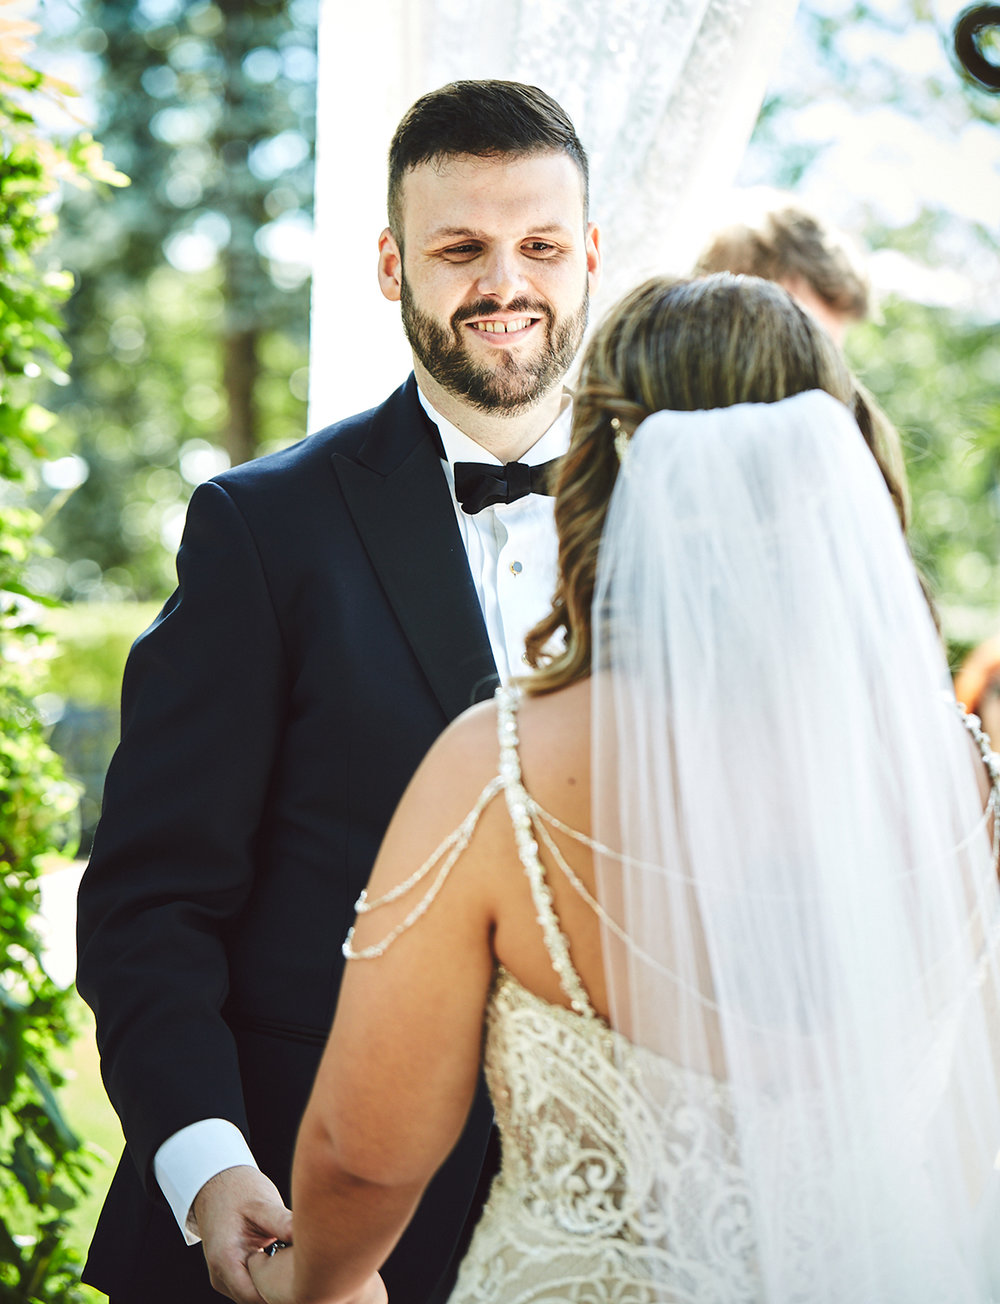 180922_CrestHollowCountryClubWeddingPhotography_LongIslandWeddingPhotographer_By_BriJohnsonWeddings_0080.jpg